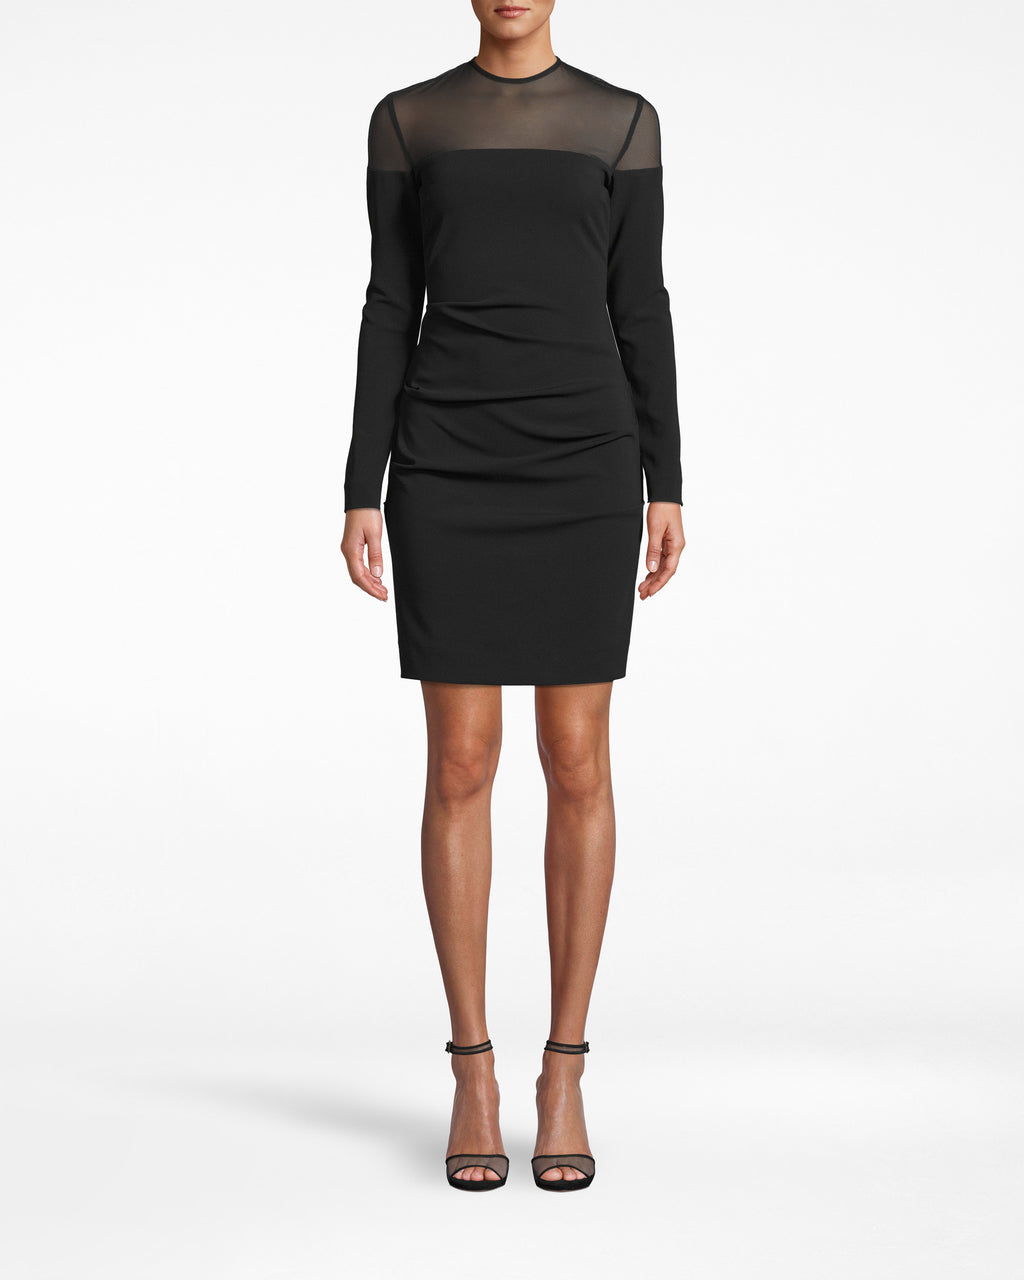 BO20095 - STRUCUTURED HEAVY JERSEY LONG SLEEVE DRESS - dresses - short - Textured gathering, a mesh neckline, and sleek long sleeves are just a few winning details to this heavy jersey style. Exposed back zipper runs to the neck.